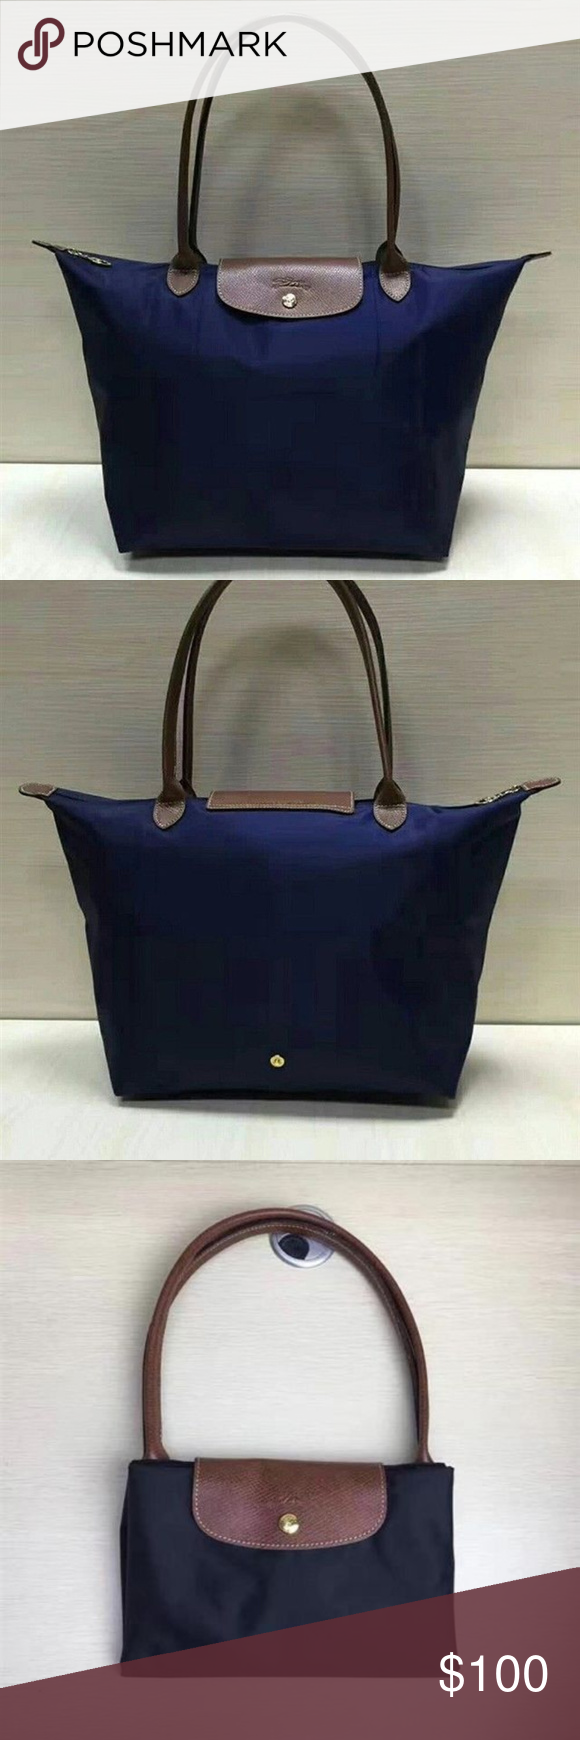 Longchamp Le Pliage Navy Blue Large New Tote Bag Brand Nylon Trims Leather Double Shoulder Straps Top Zip Closure